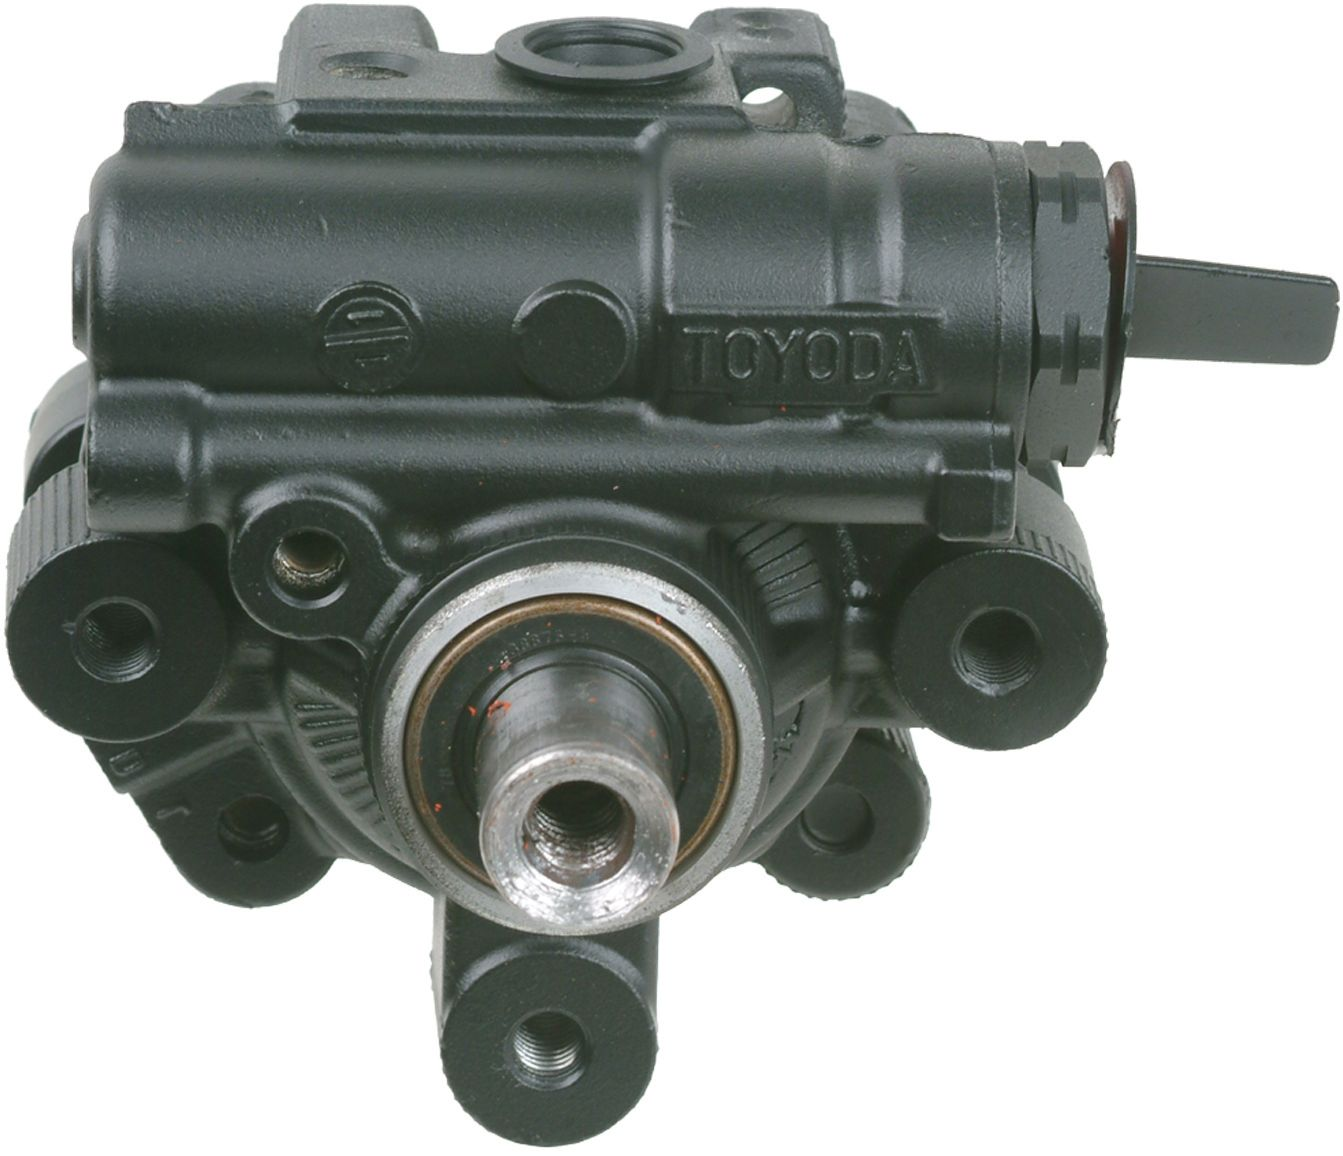 2007 Dodge Charger Power Steering Pump Cardone 96-5439